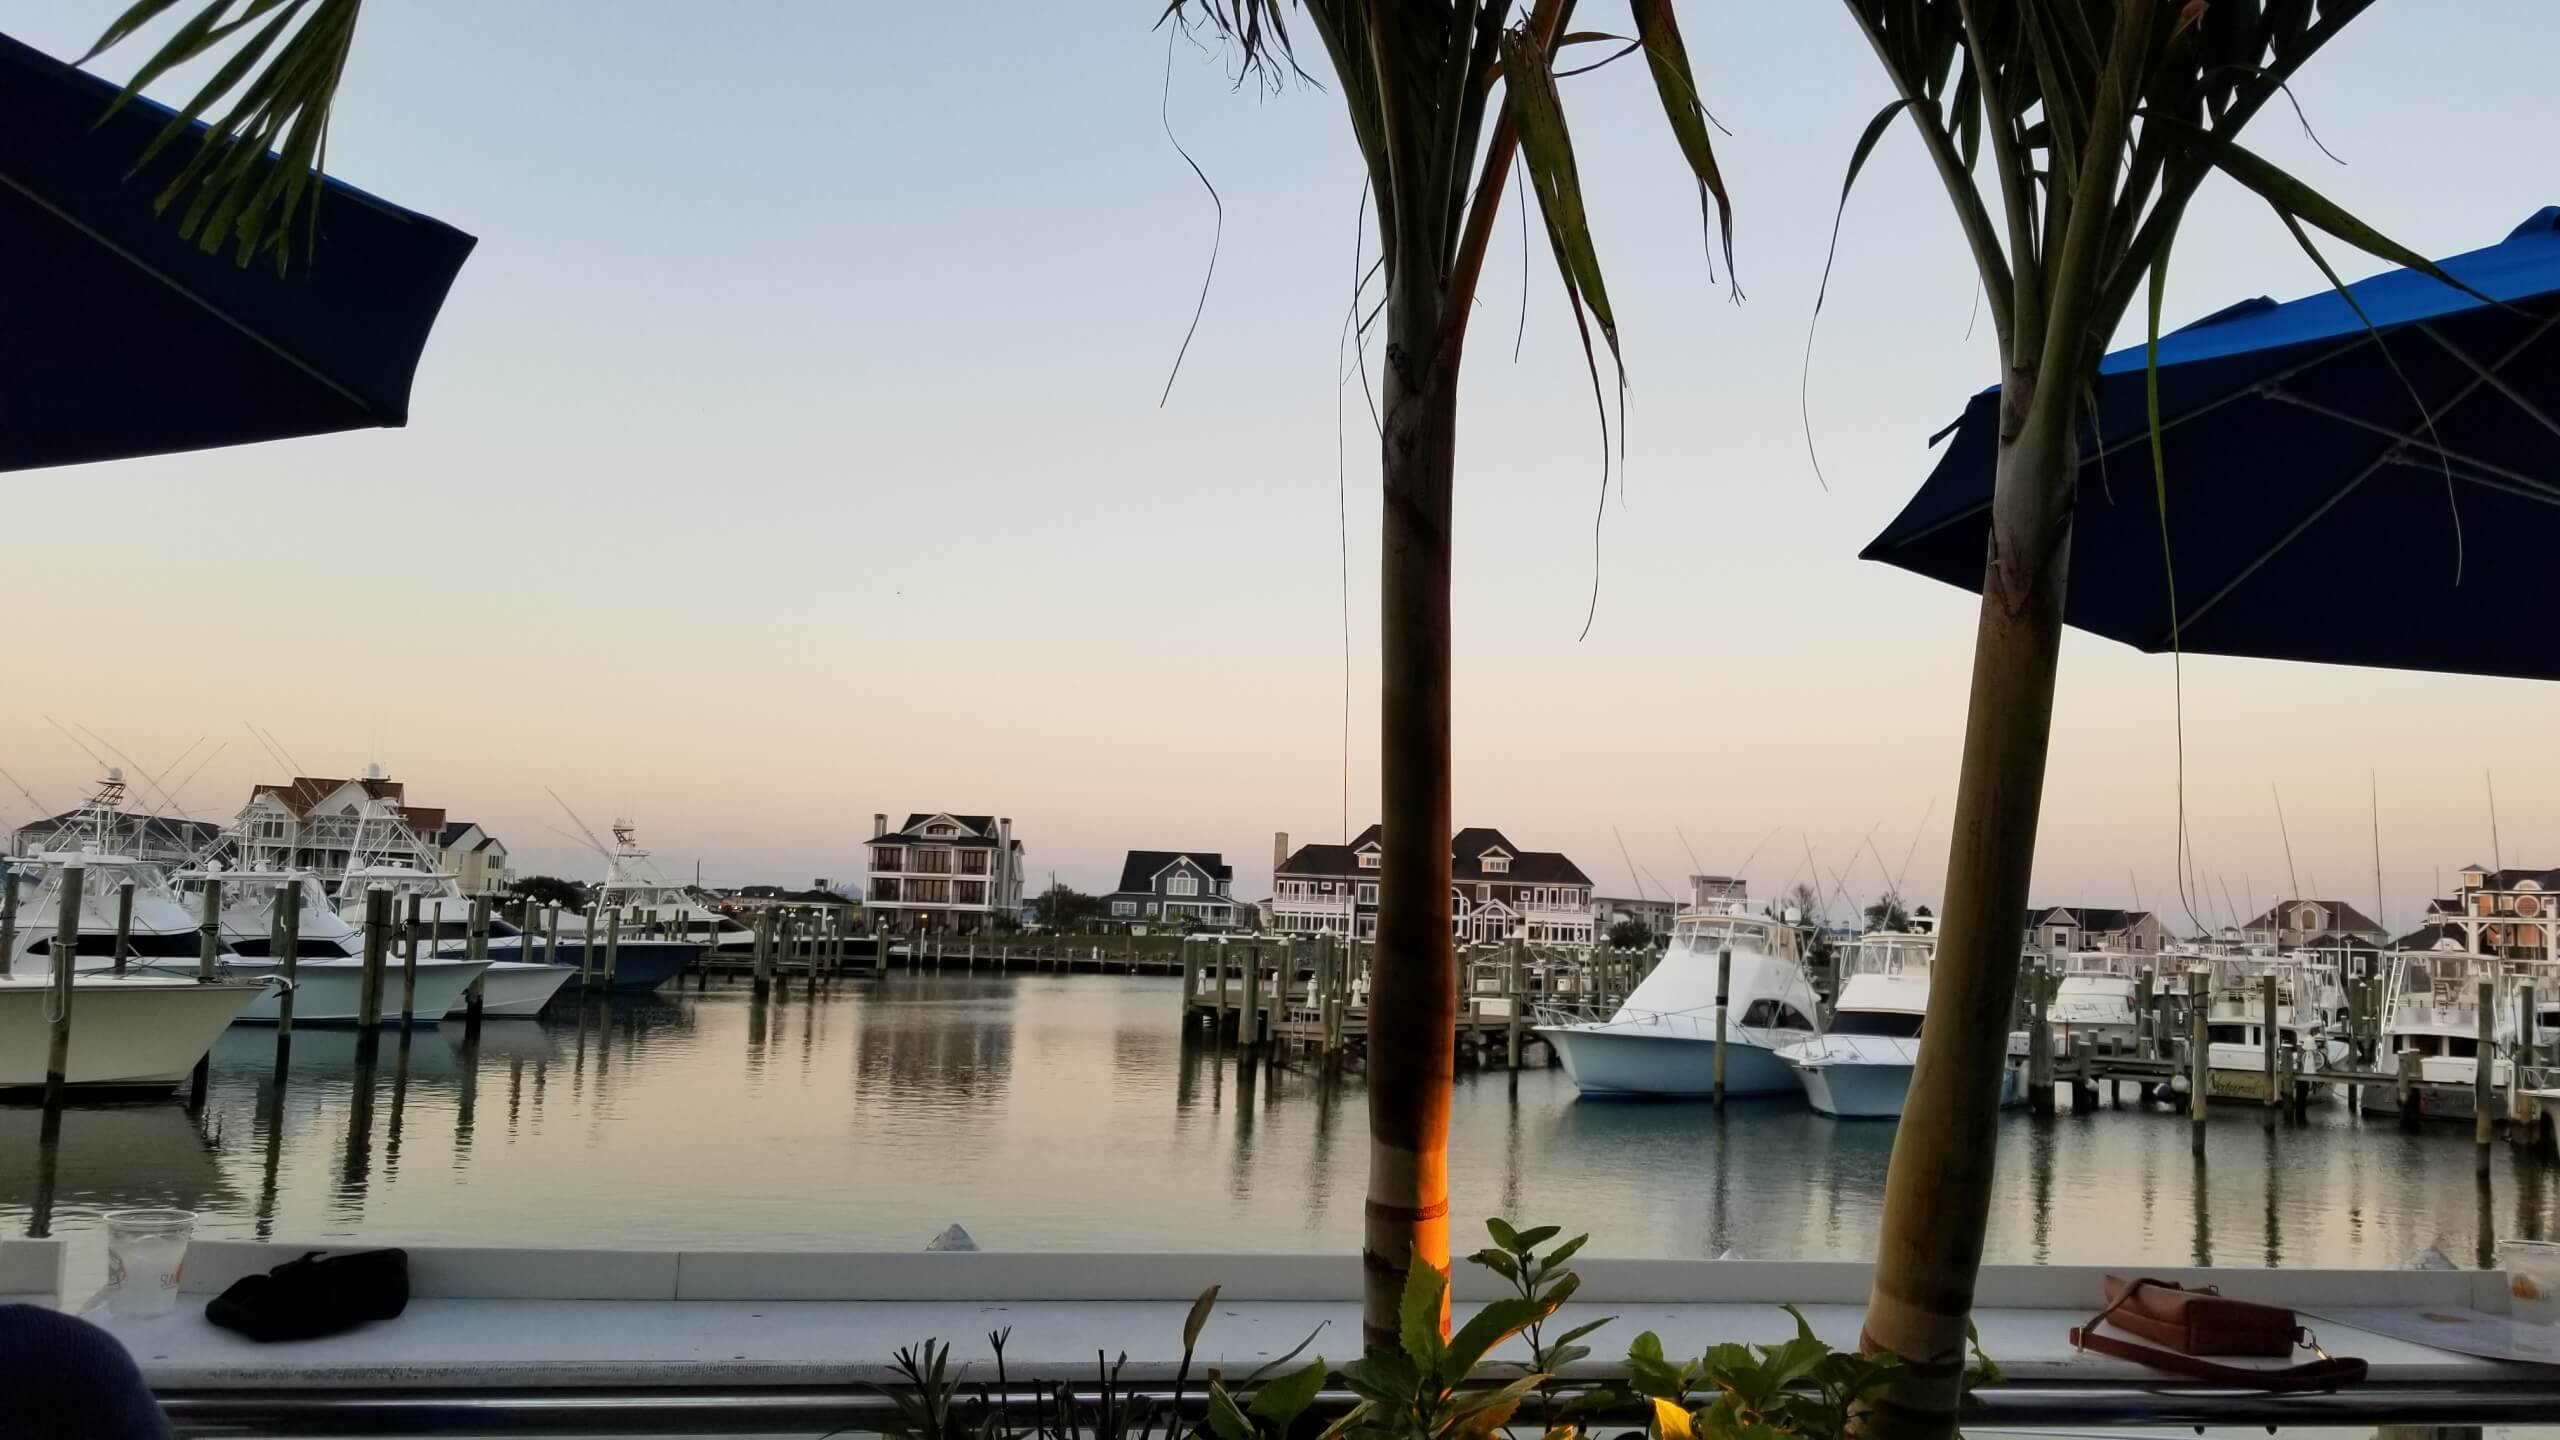 View of the marina from the first floor dock at Sunset Grille